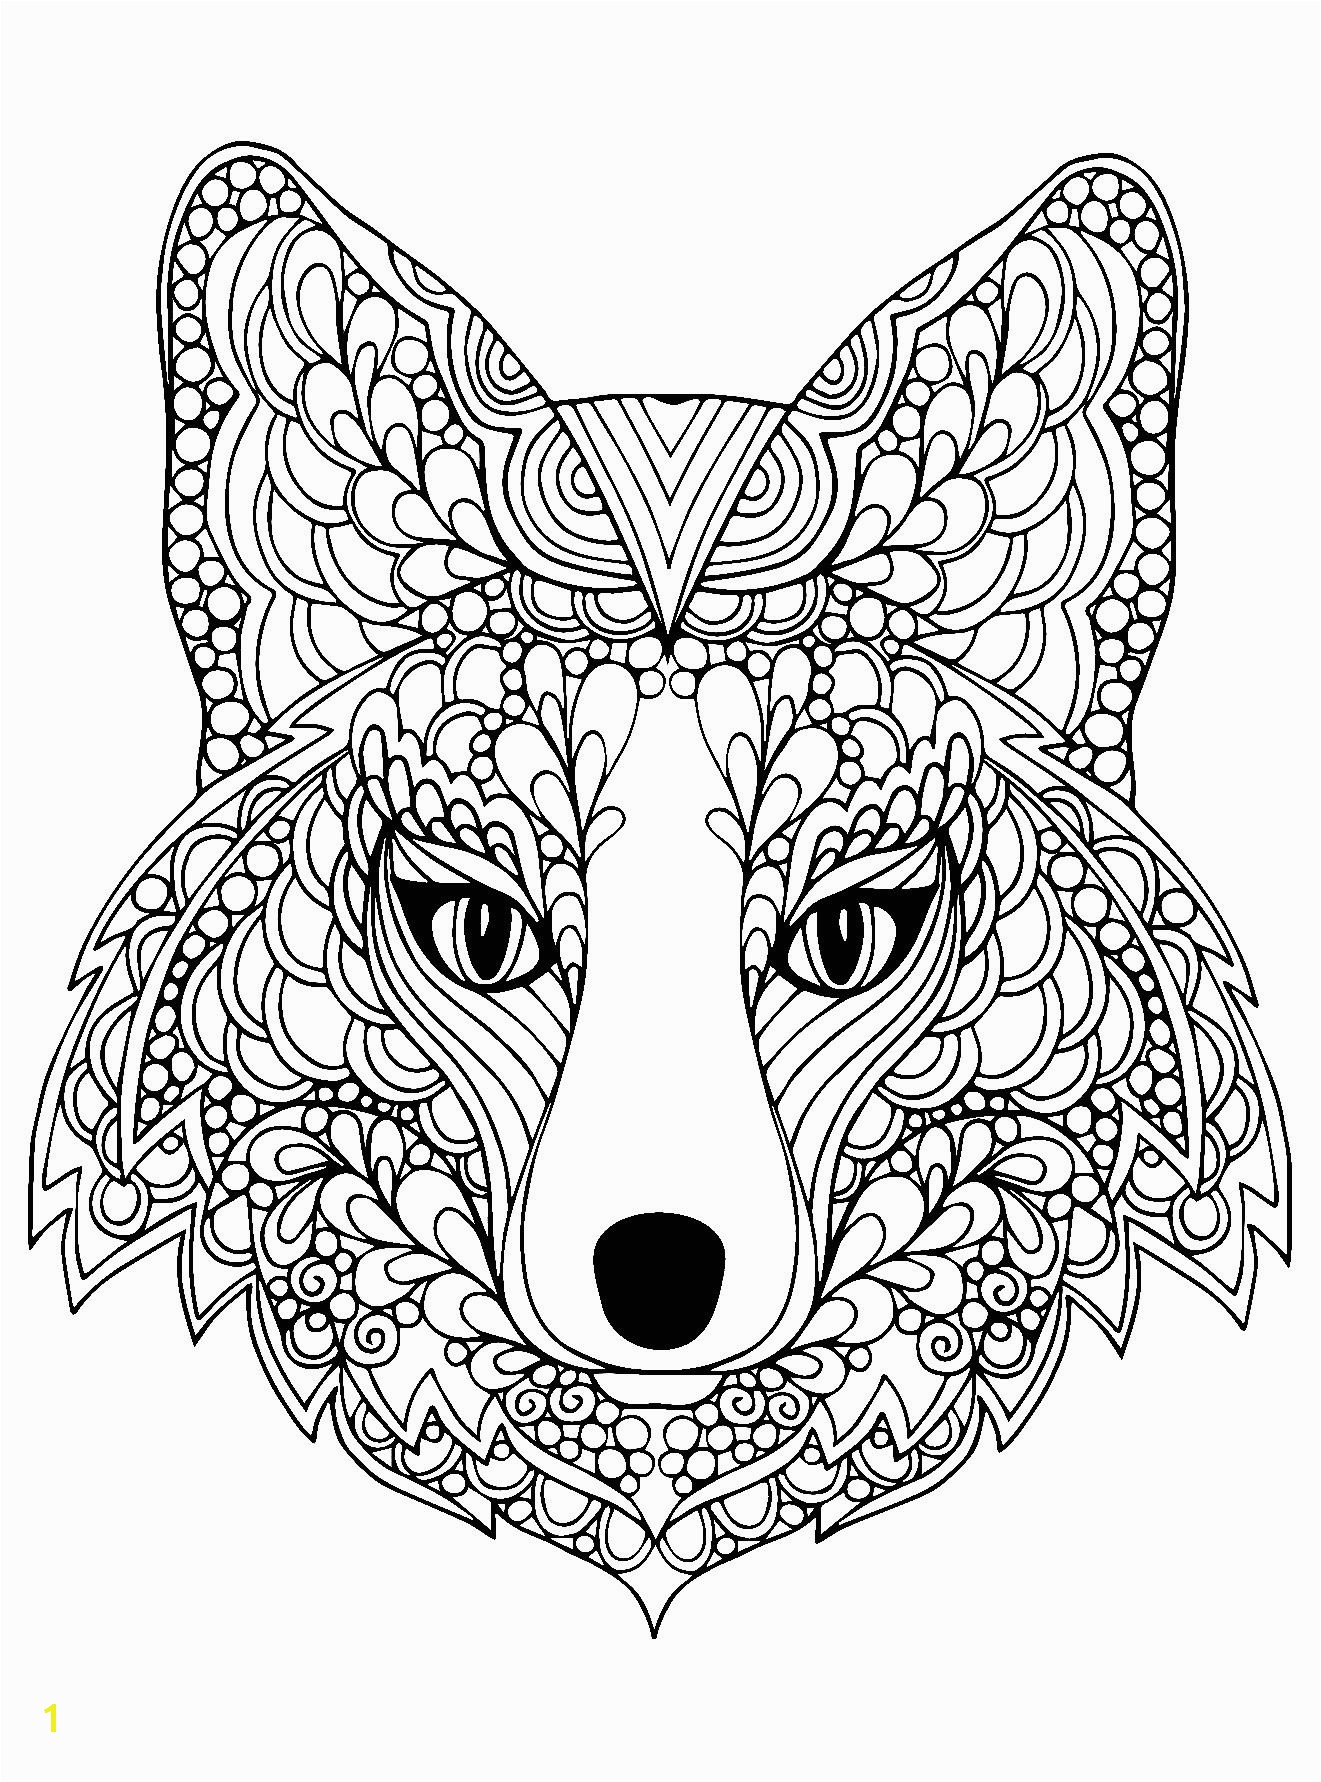 coloring page beutiful fox head free to print